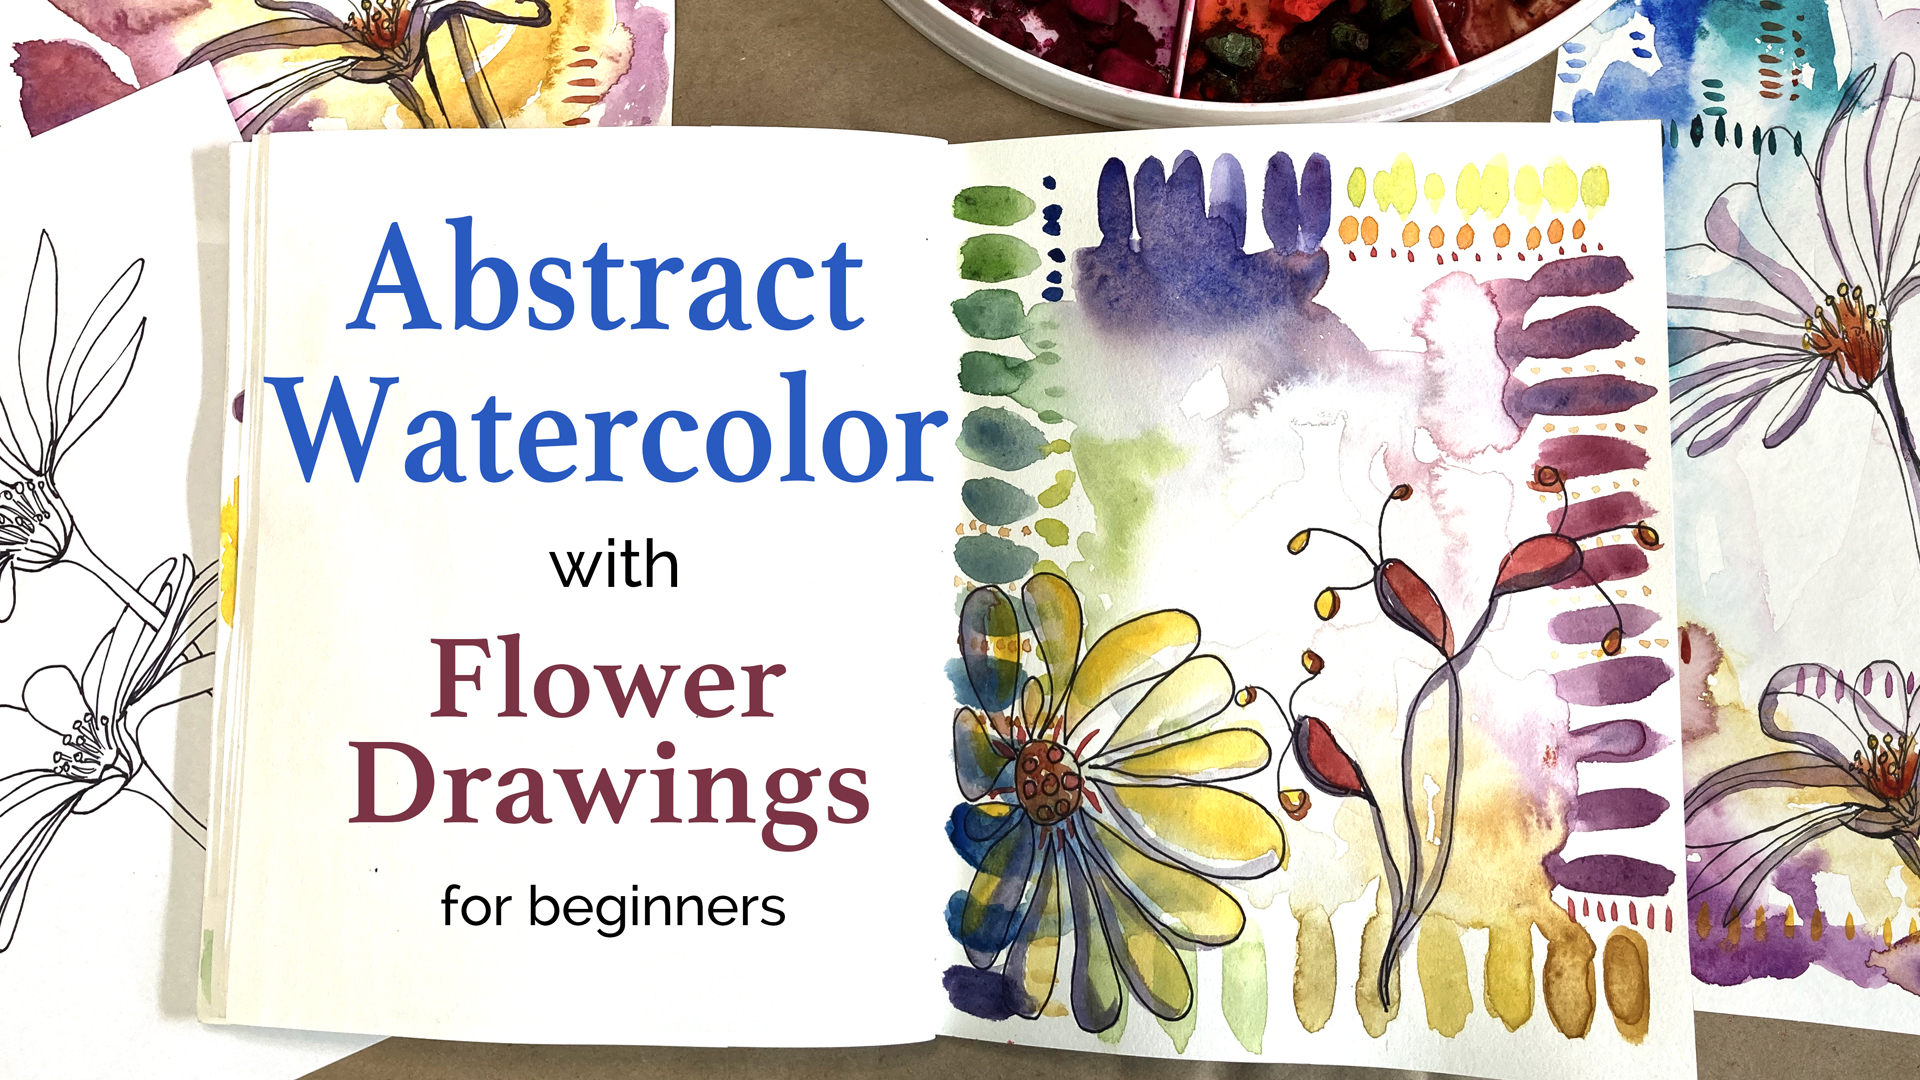 Abstract Watercolor with Flower Drawings